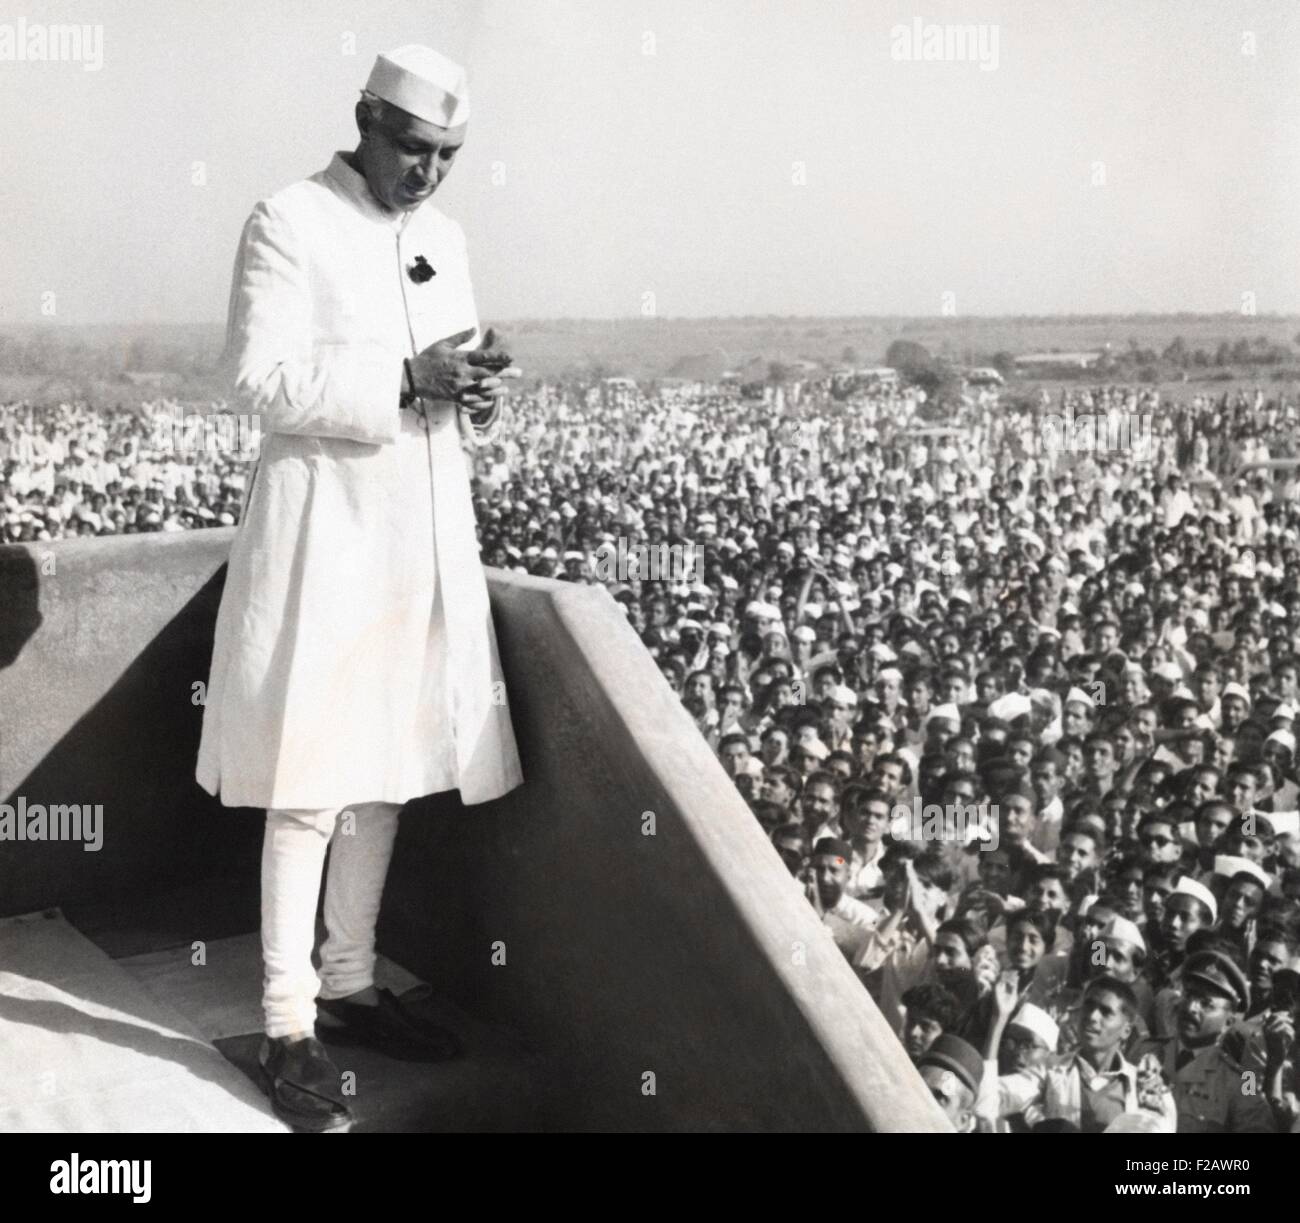 Jawaharlal Nehru, Prime Minister of India, addressing a crowd at Parnera, India. March 23, 1952. The occasion was - Stock Image